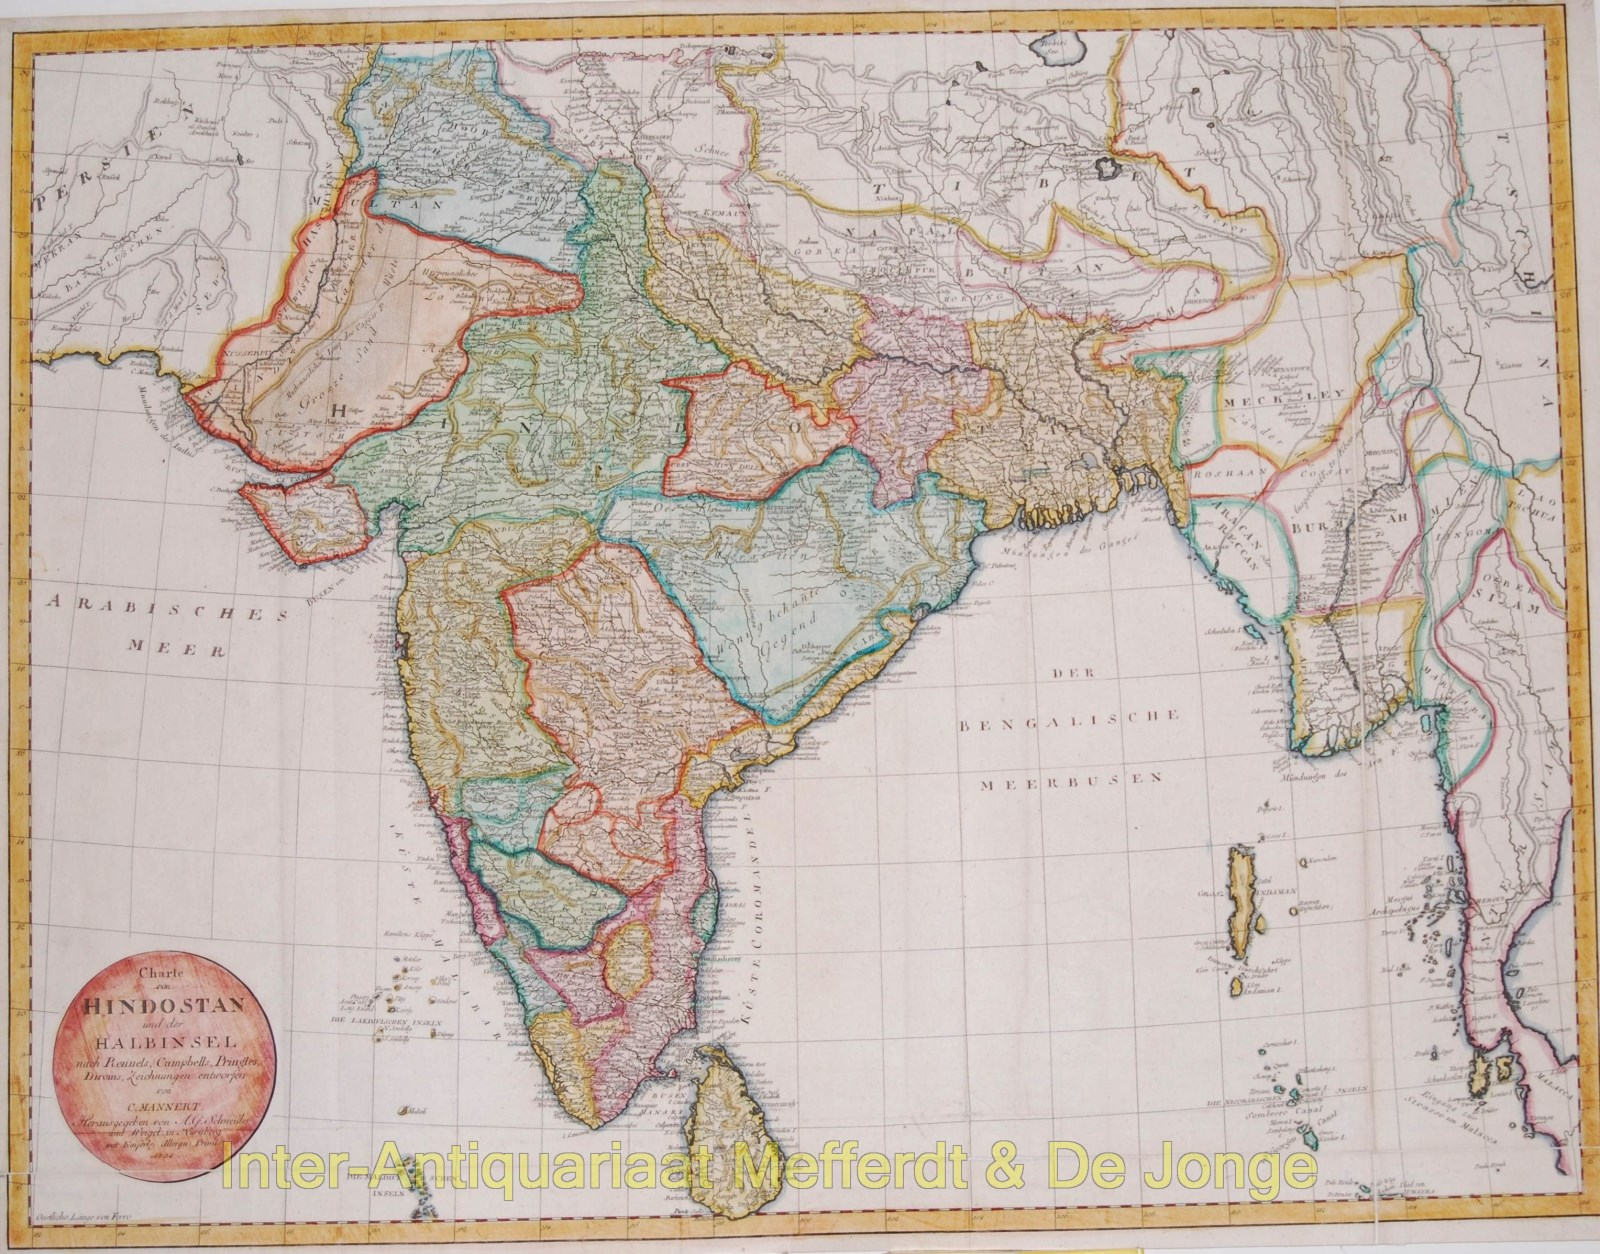 India antique map - Mannert, 1804 - Inter-Antiquariaat Mefferdt & De on